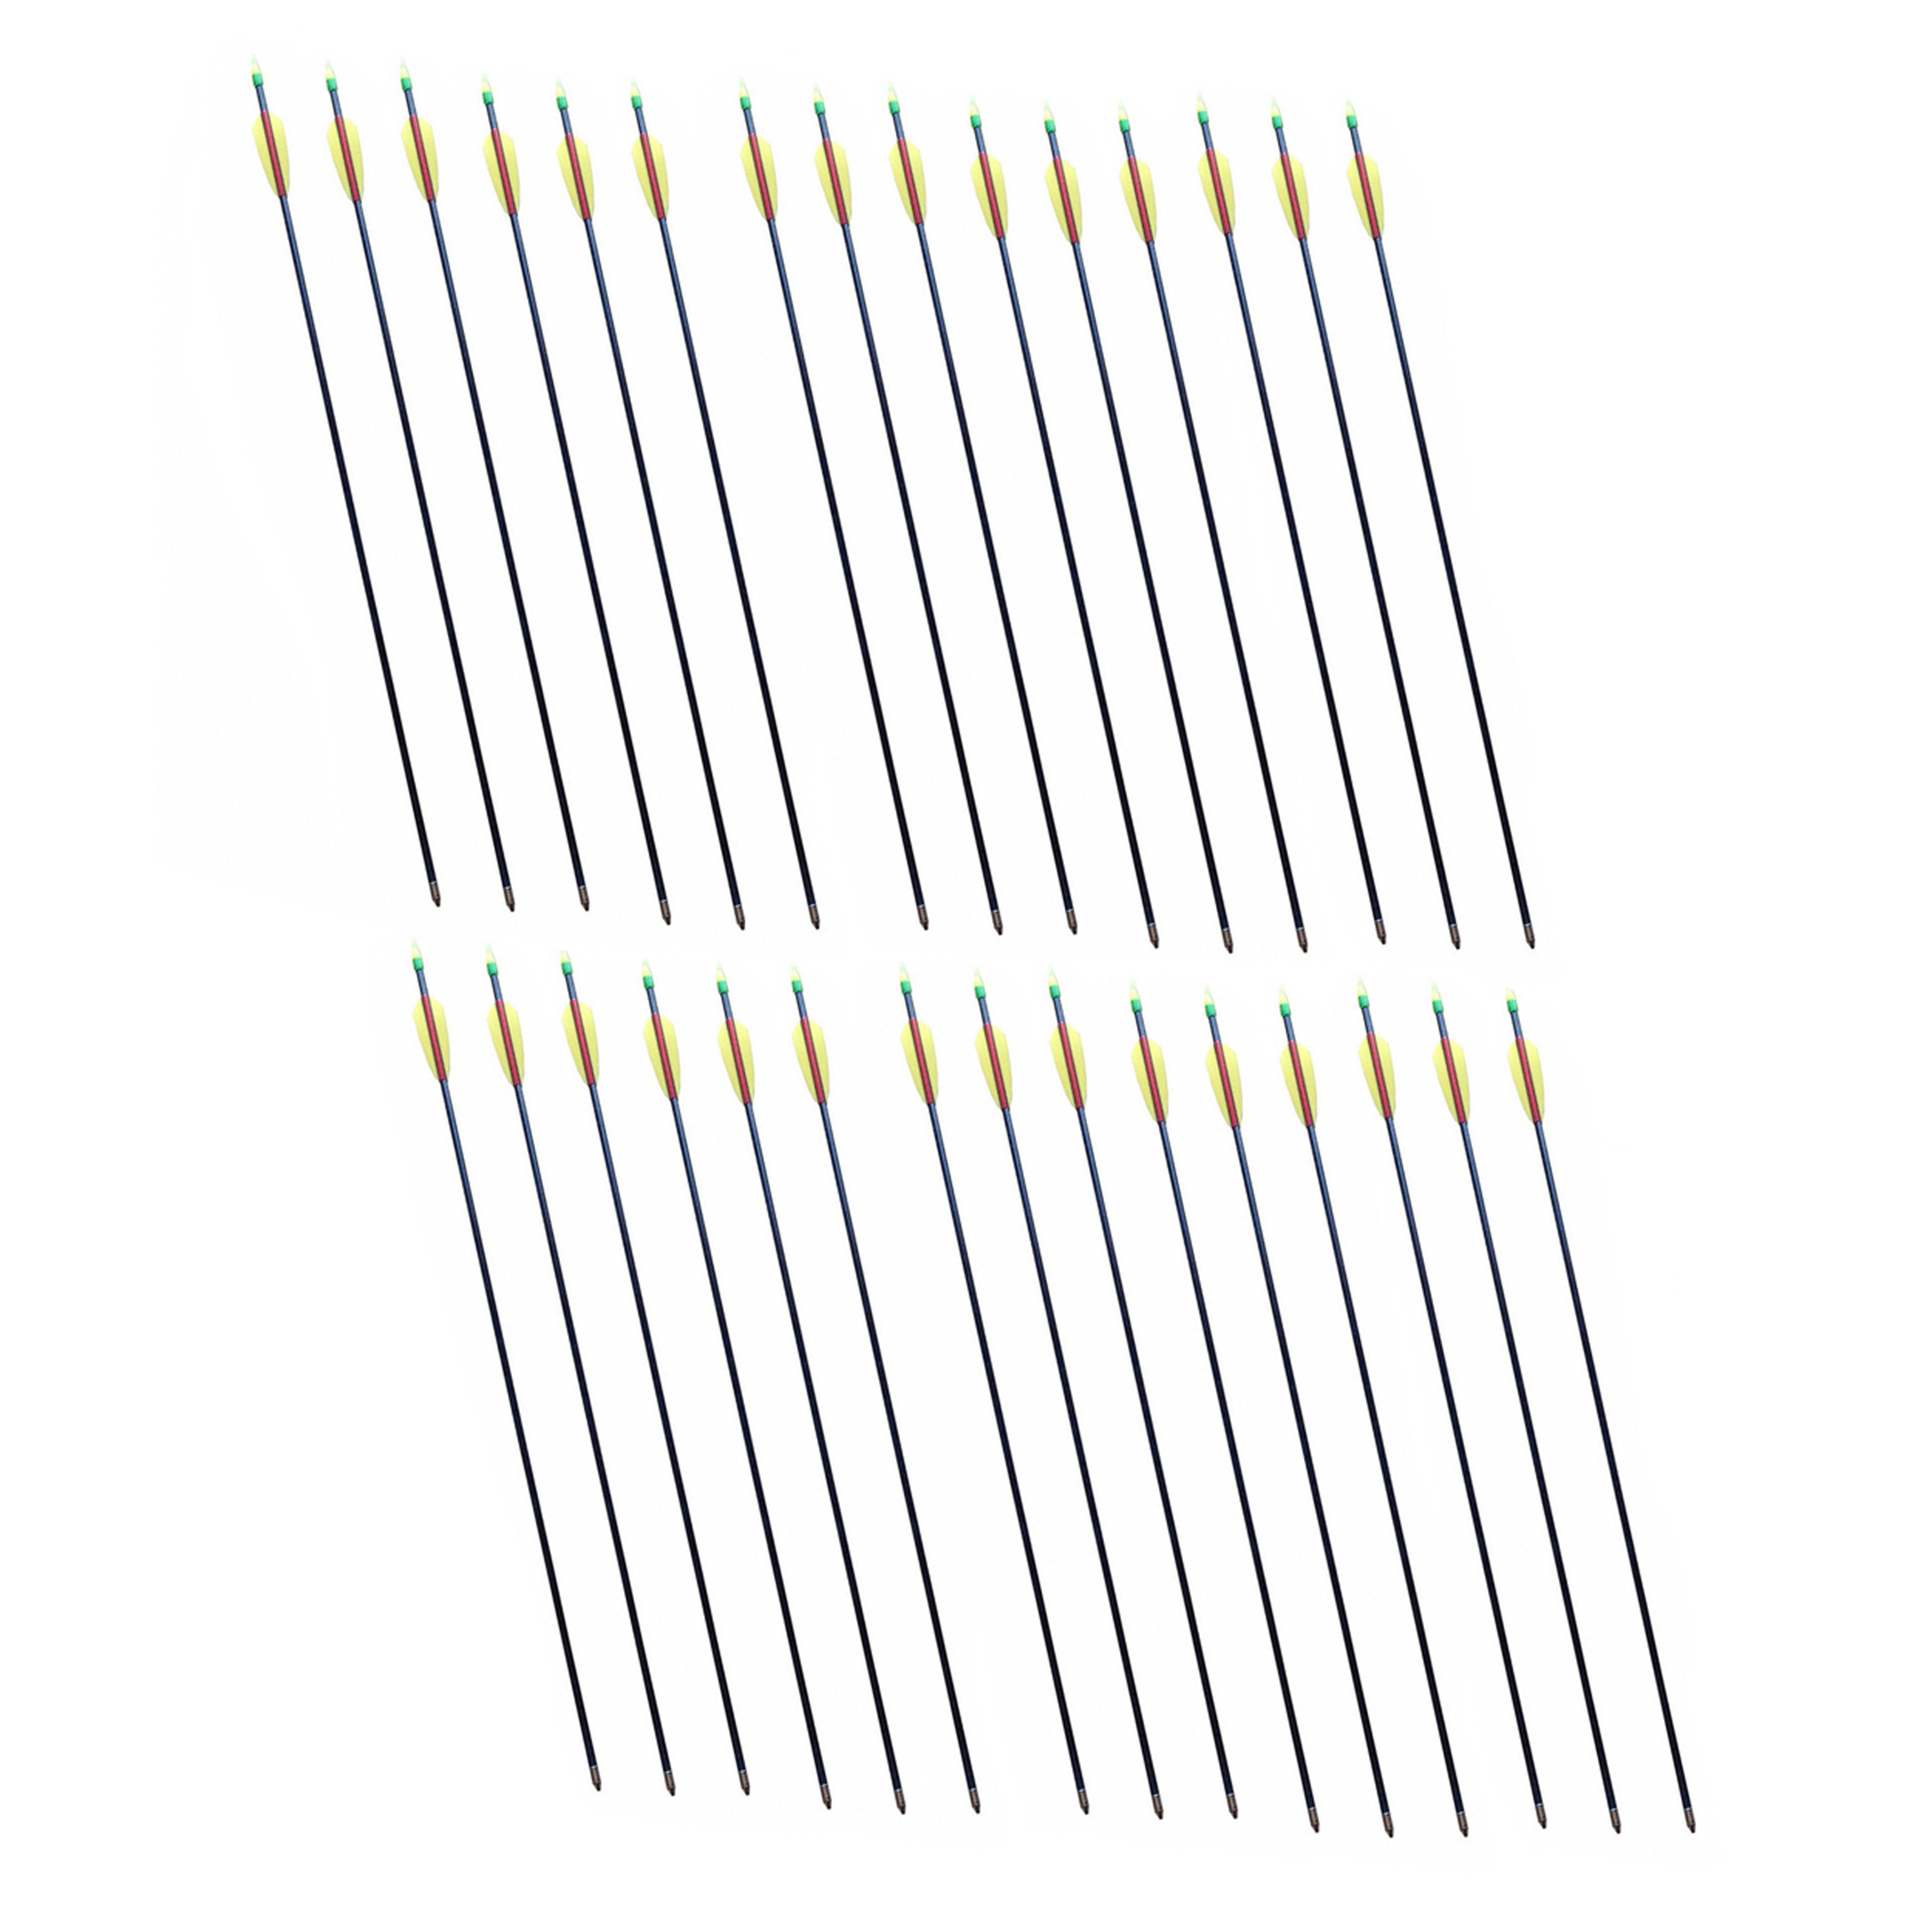 SA Sports Youth 28-In Fiberglass Archery Arrows (30-Pack)...